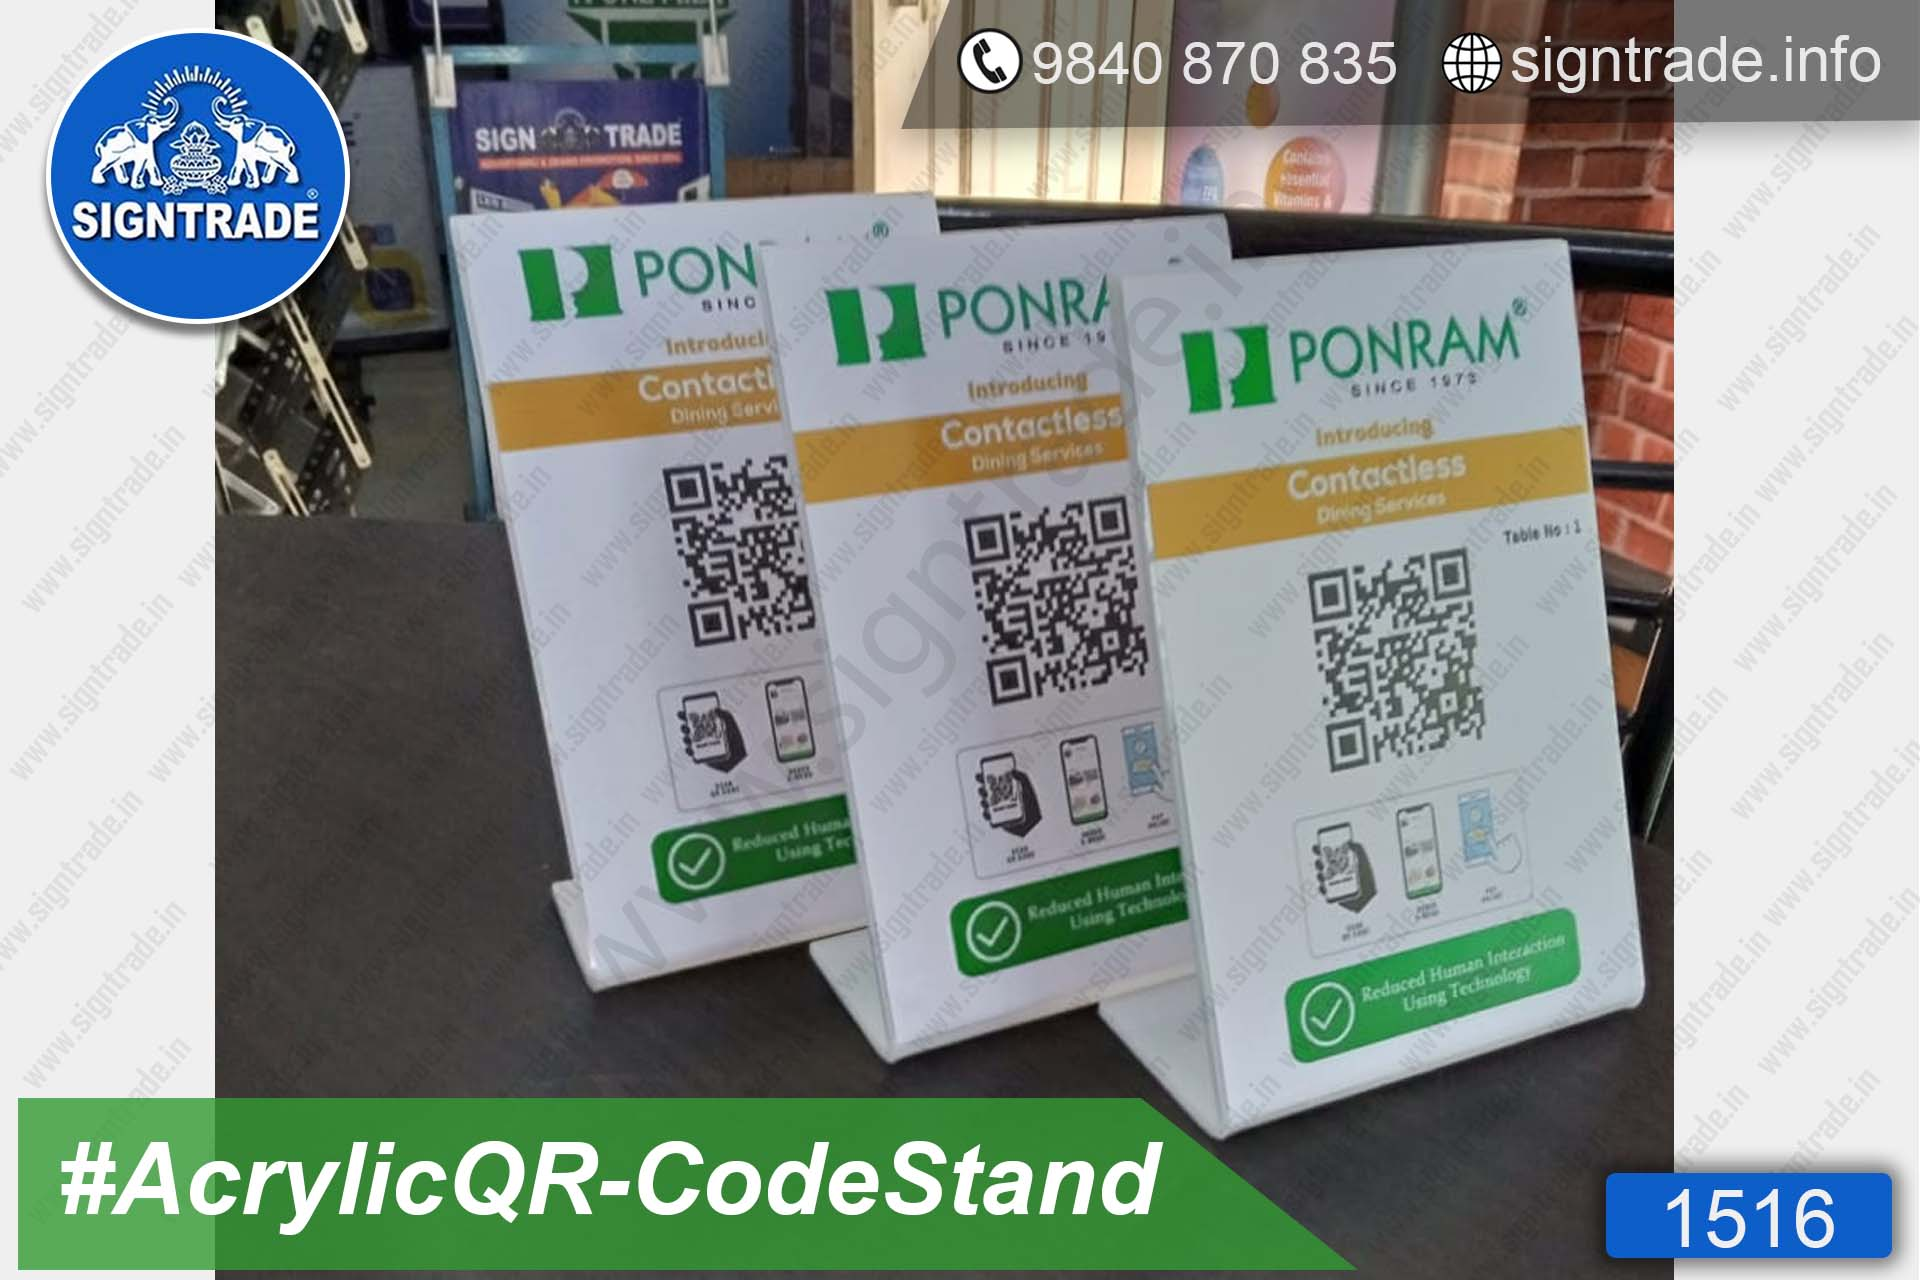 PONRAM Hotel, Dindigul - SIGNTRADE - Acrylic QR Code Stand Manufacturer, Wholesaler in Chennai